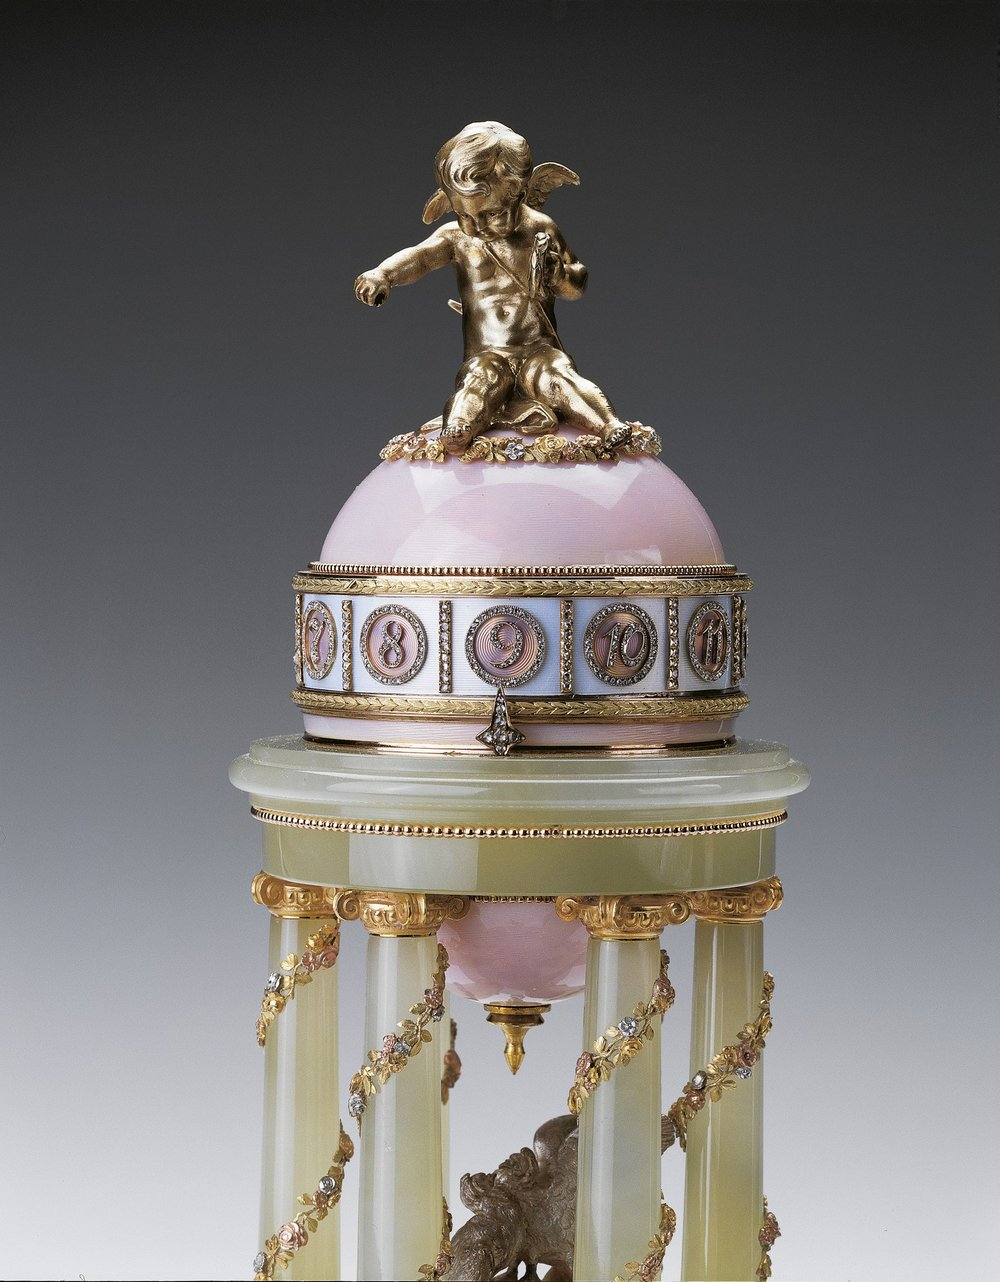 A detail photograph of the Colonnade Egg of 1910 by Fabergé.